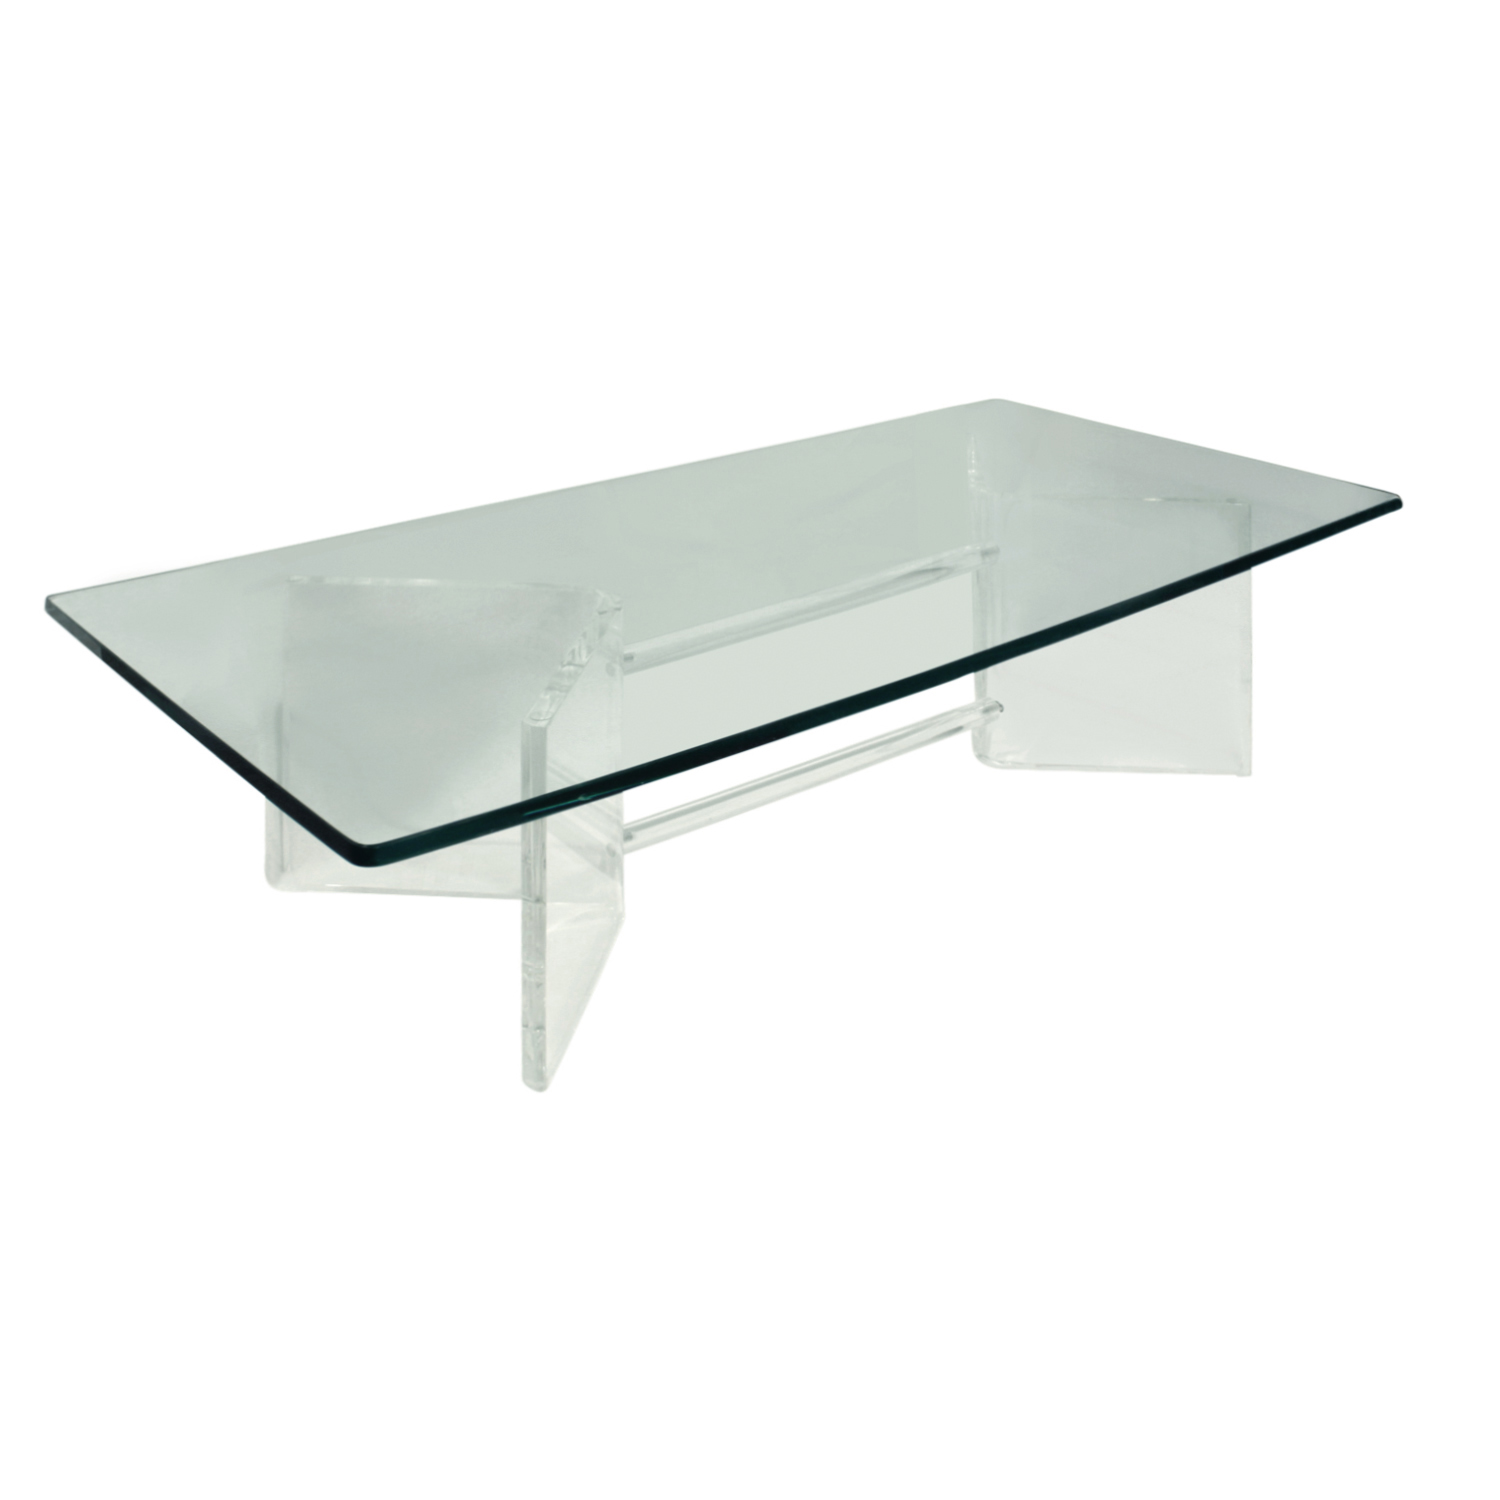 70s 65 rect lucite rod stretchers coffeetable417 agl1.jpg